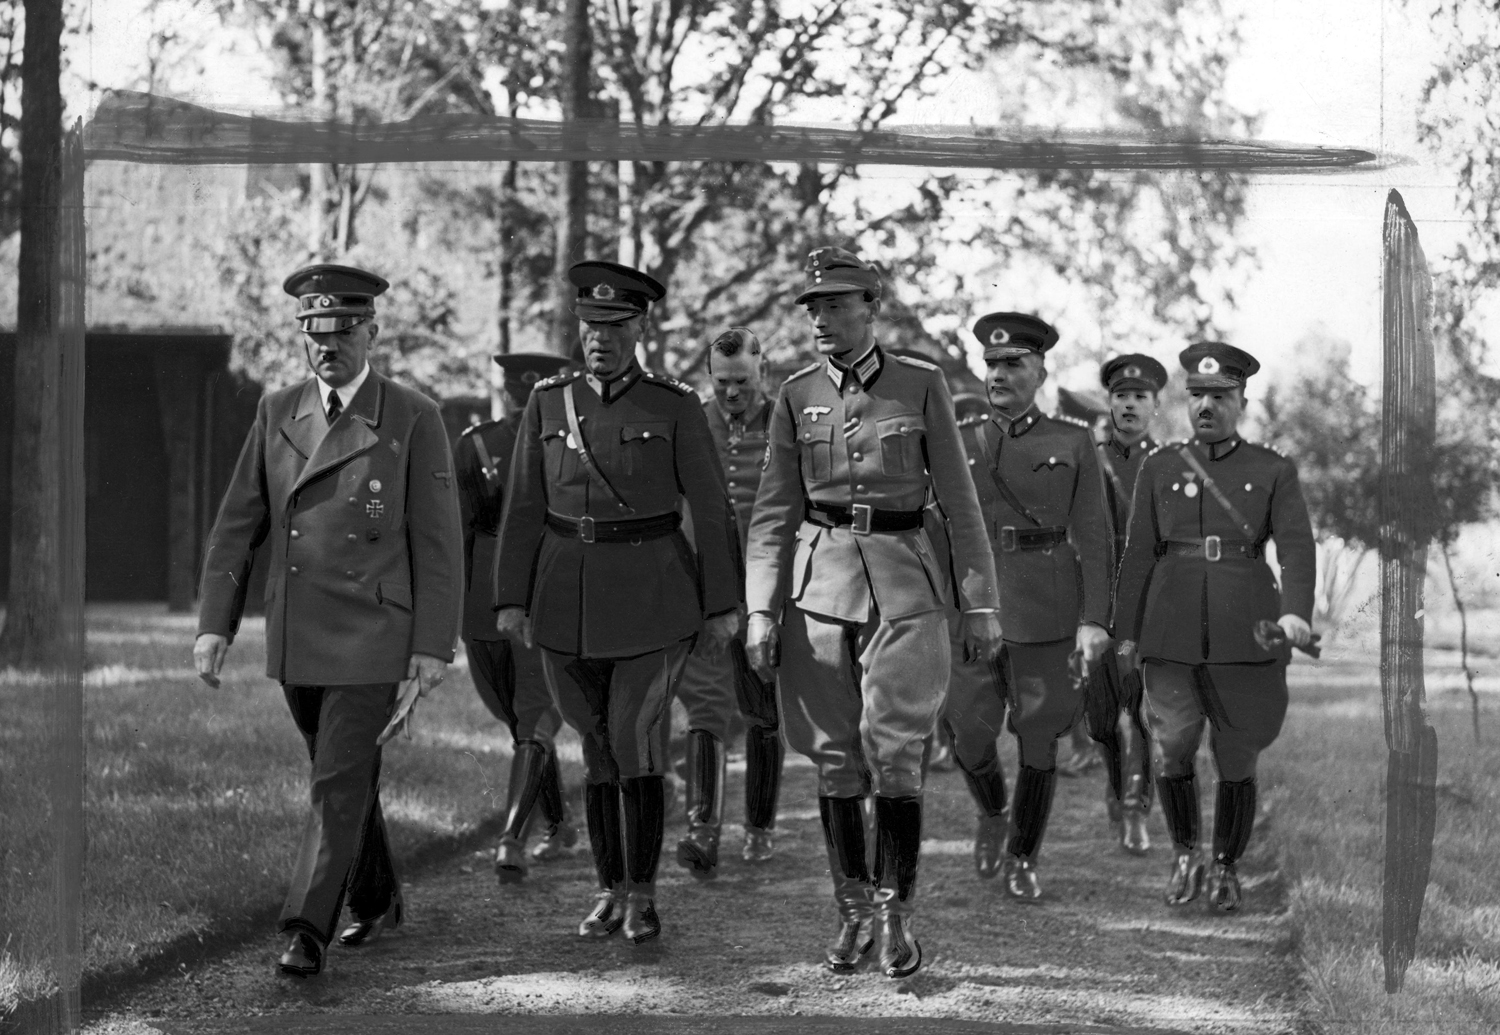 Adolf Hitler receives Turkish officers under the command of Colonel-General Toydemir at the Wolfsschanze